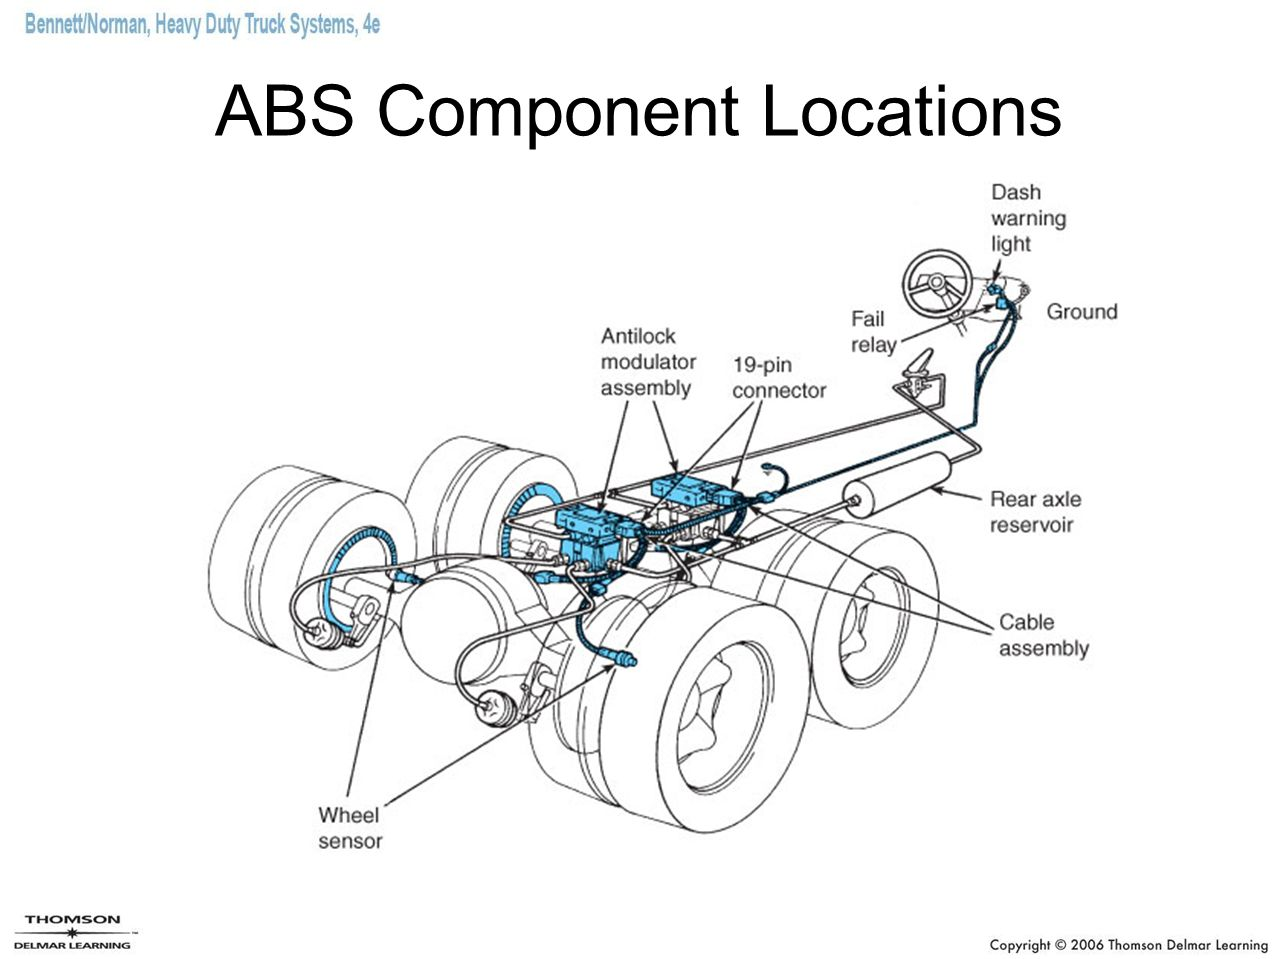 ABS Component Locations